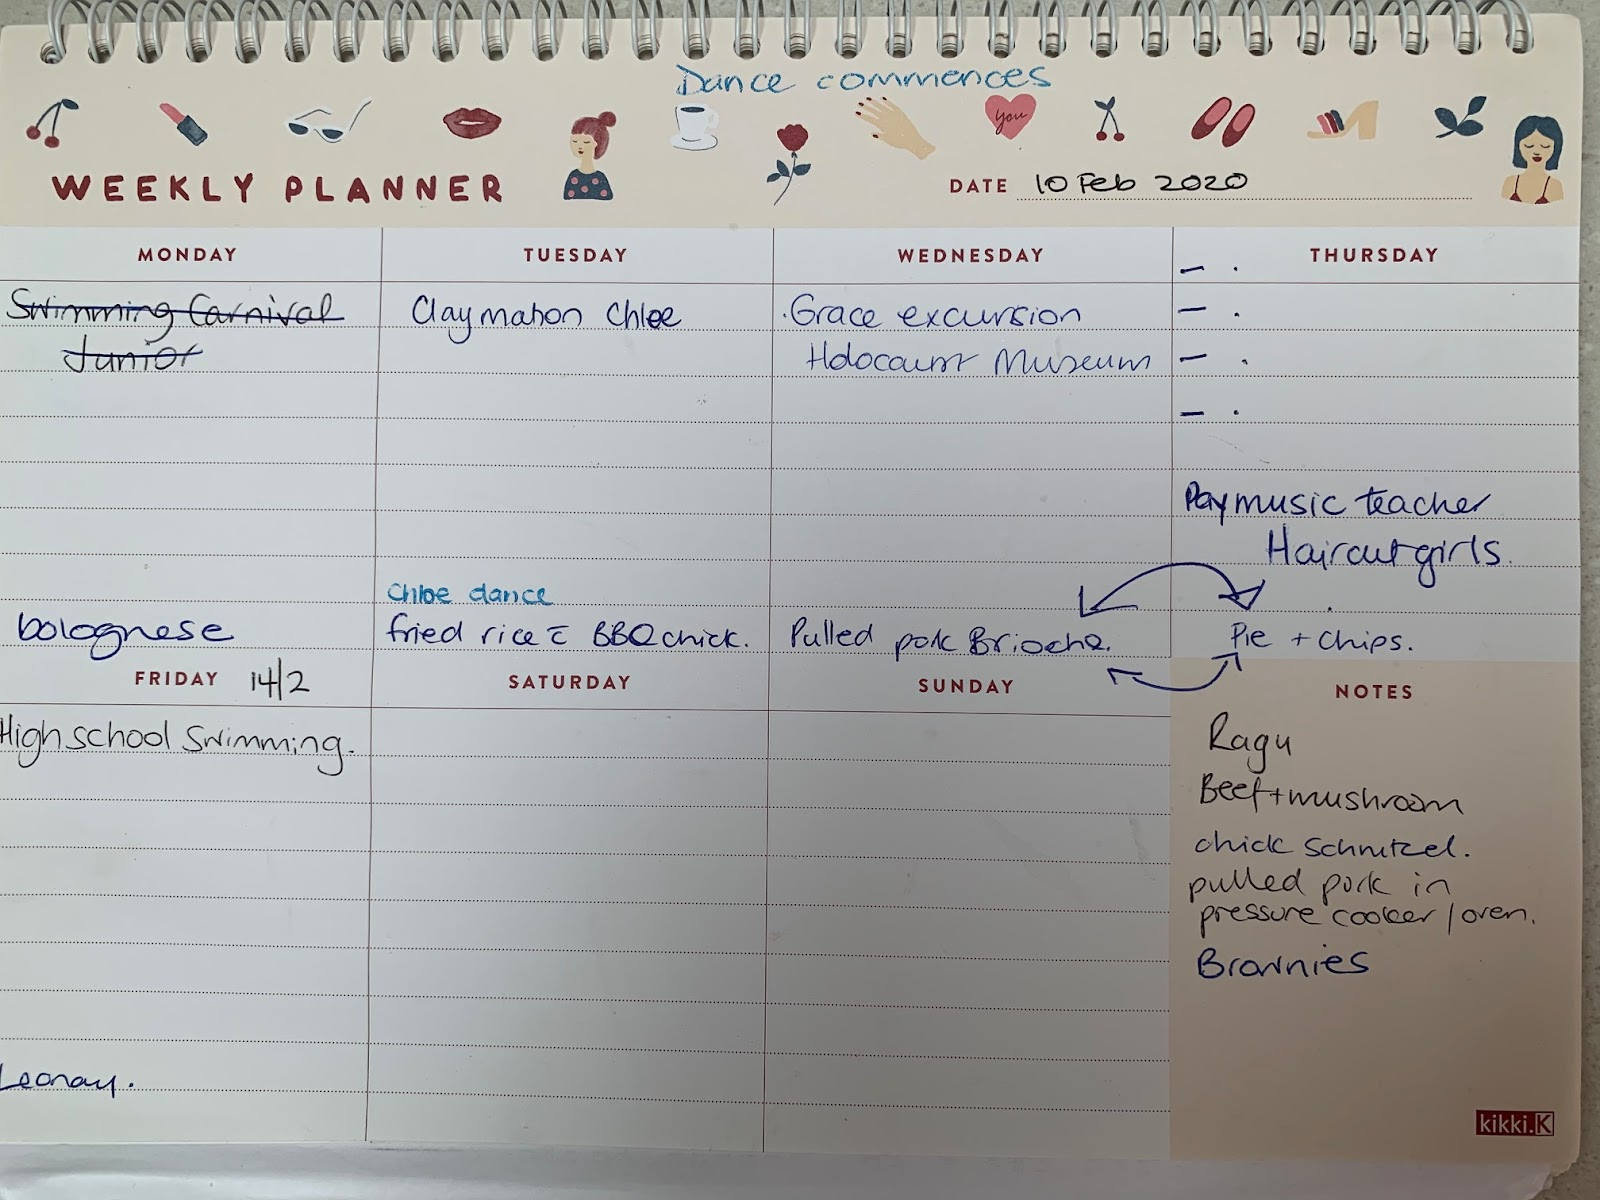 A picture of a weekly planner filled out with family activities